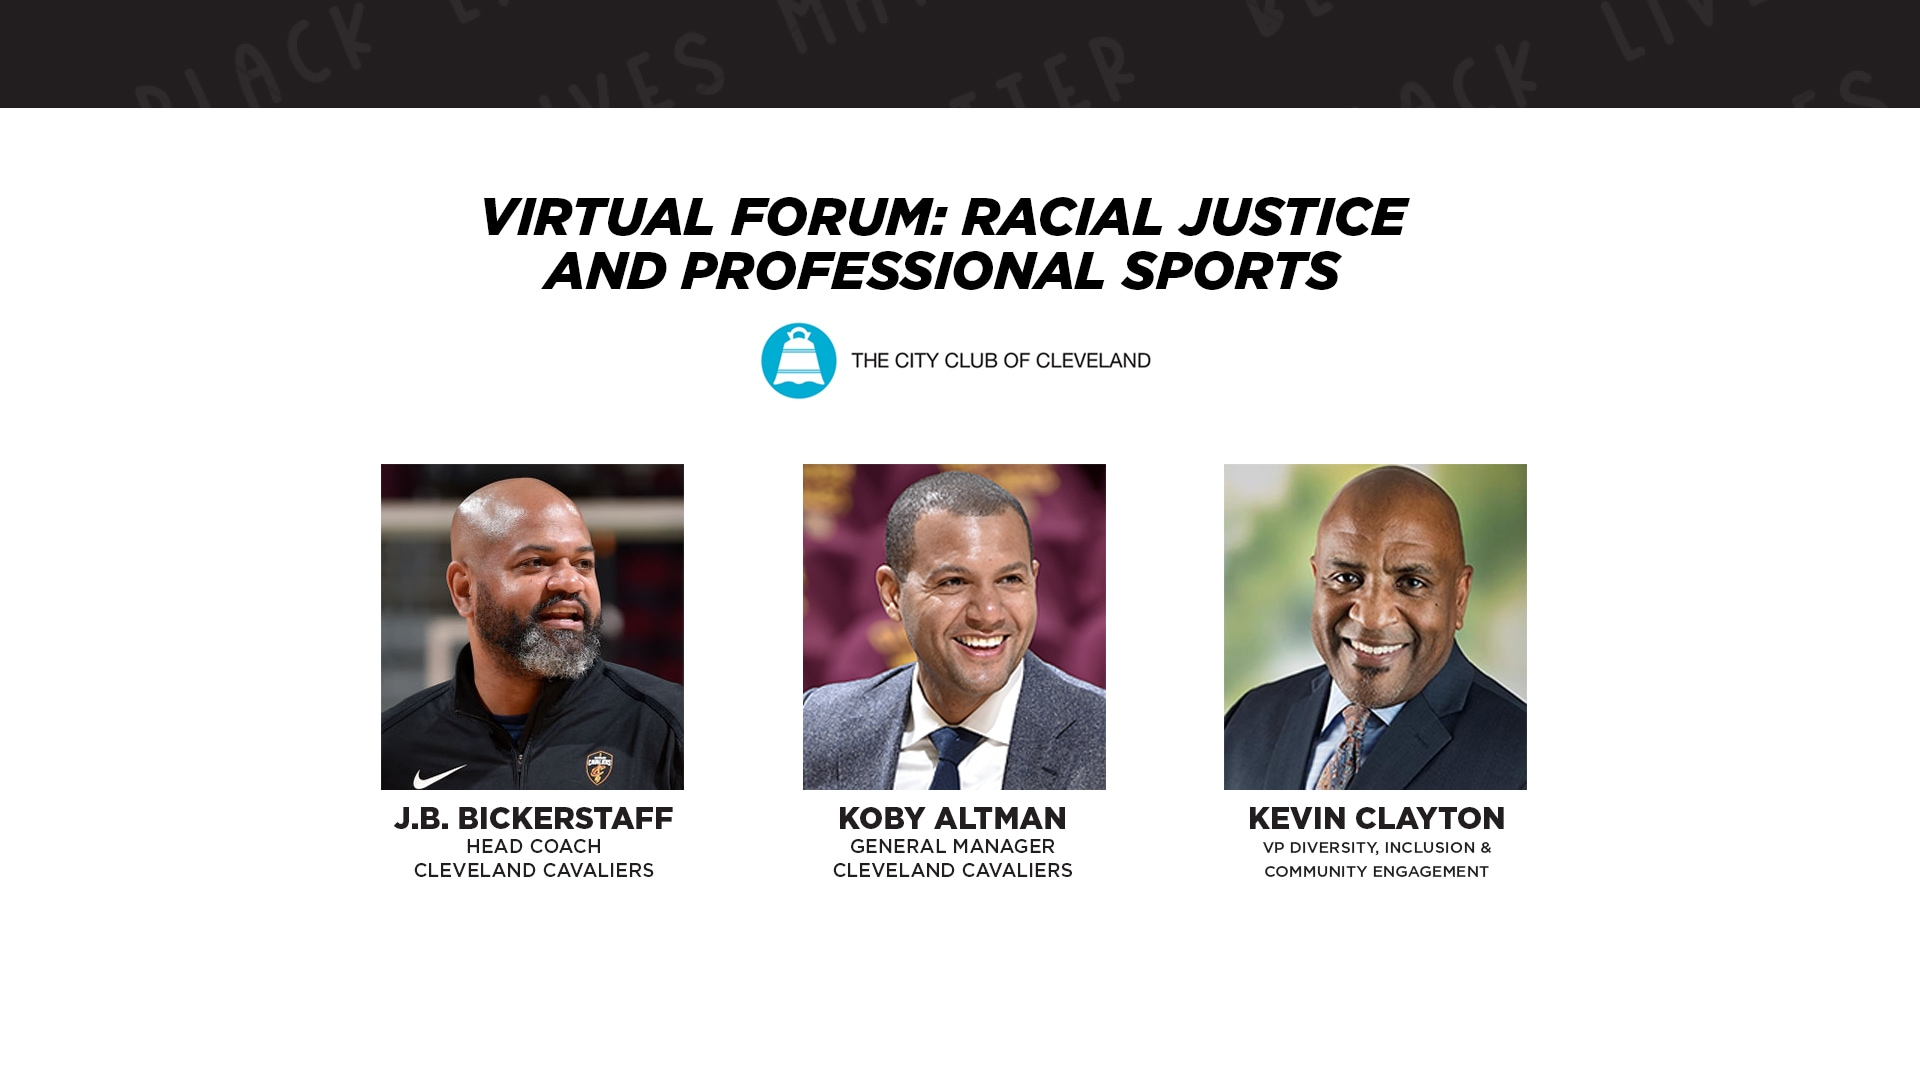 Virtual Forum: Racial Justice and Professional Sports